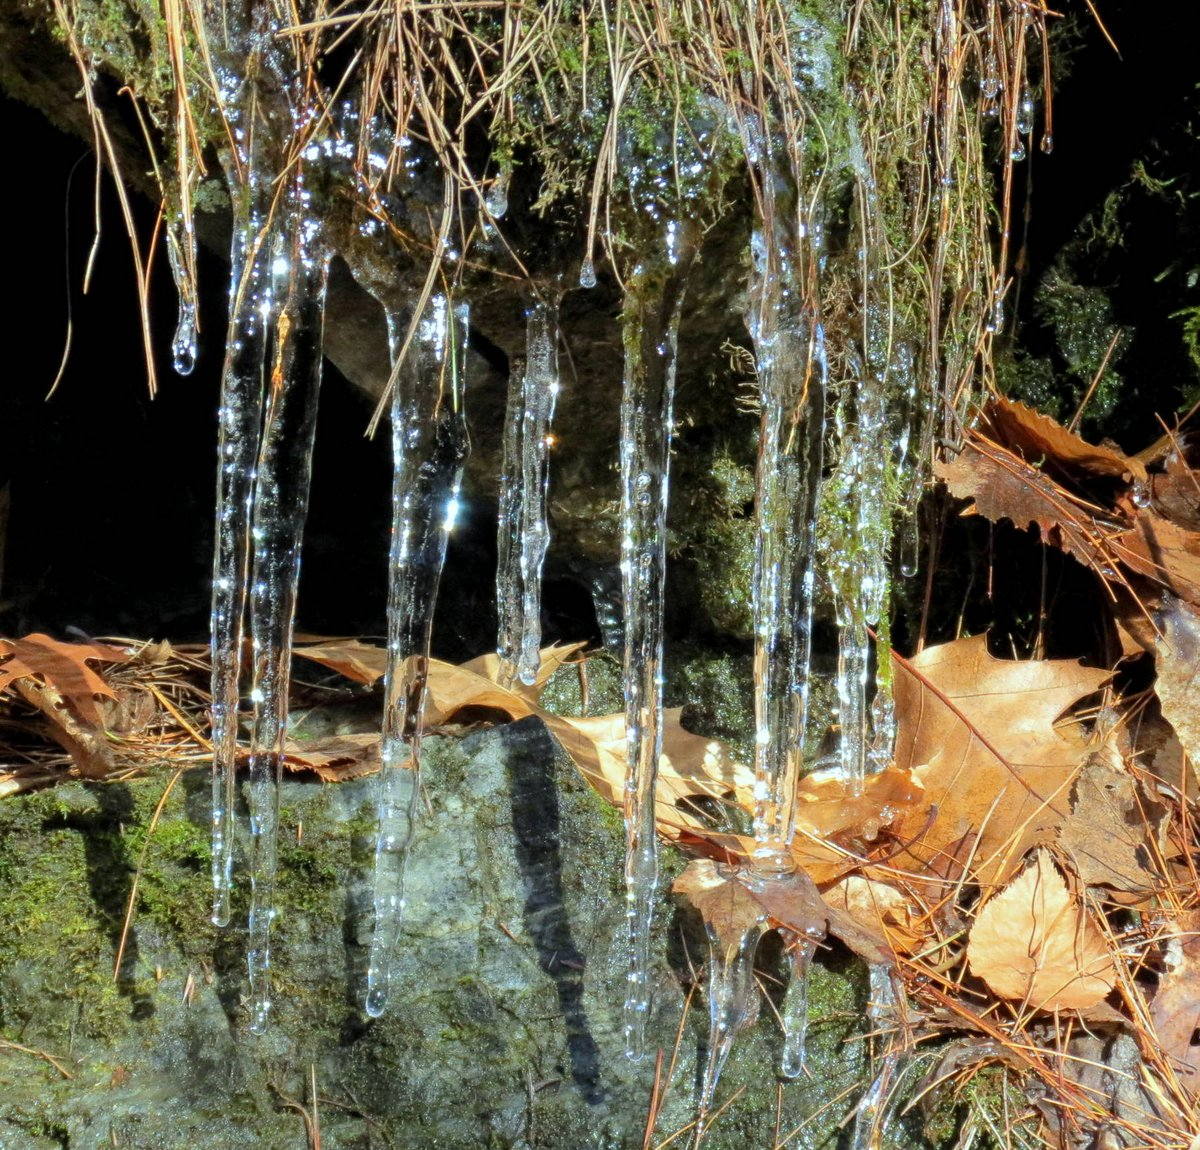 12. Icicles